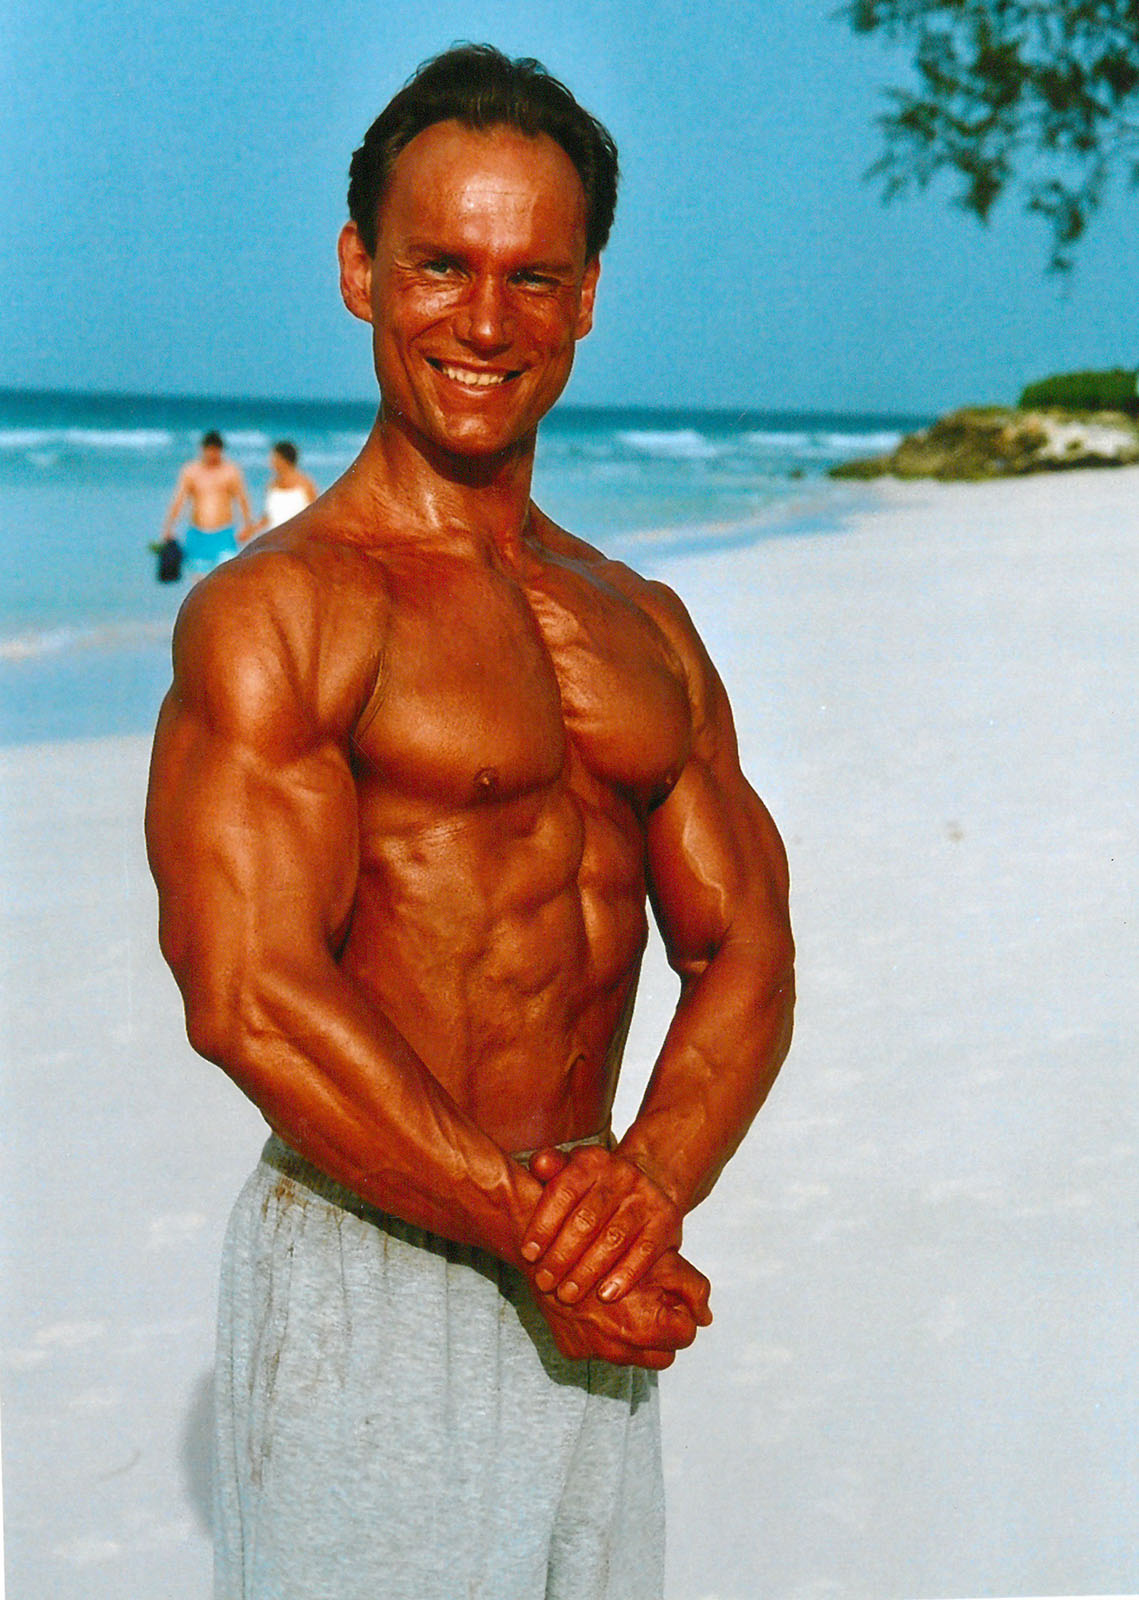 WNBF Pro Mr. Universe 2004 (Bridgetown / Barbados)